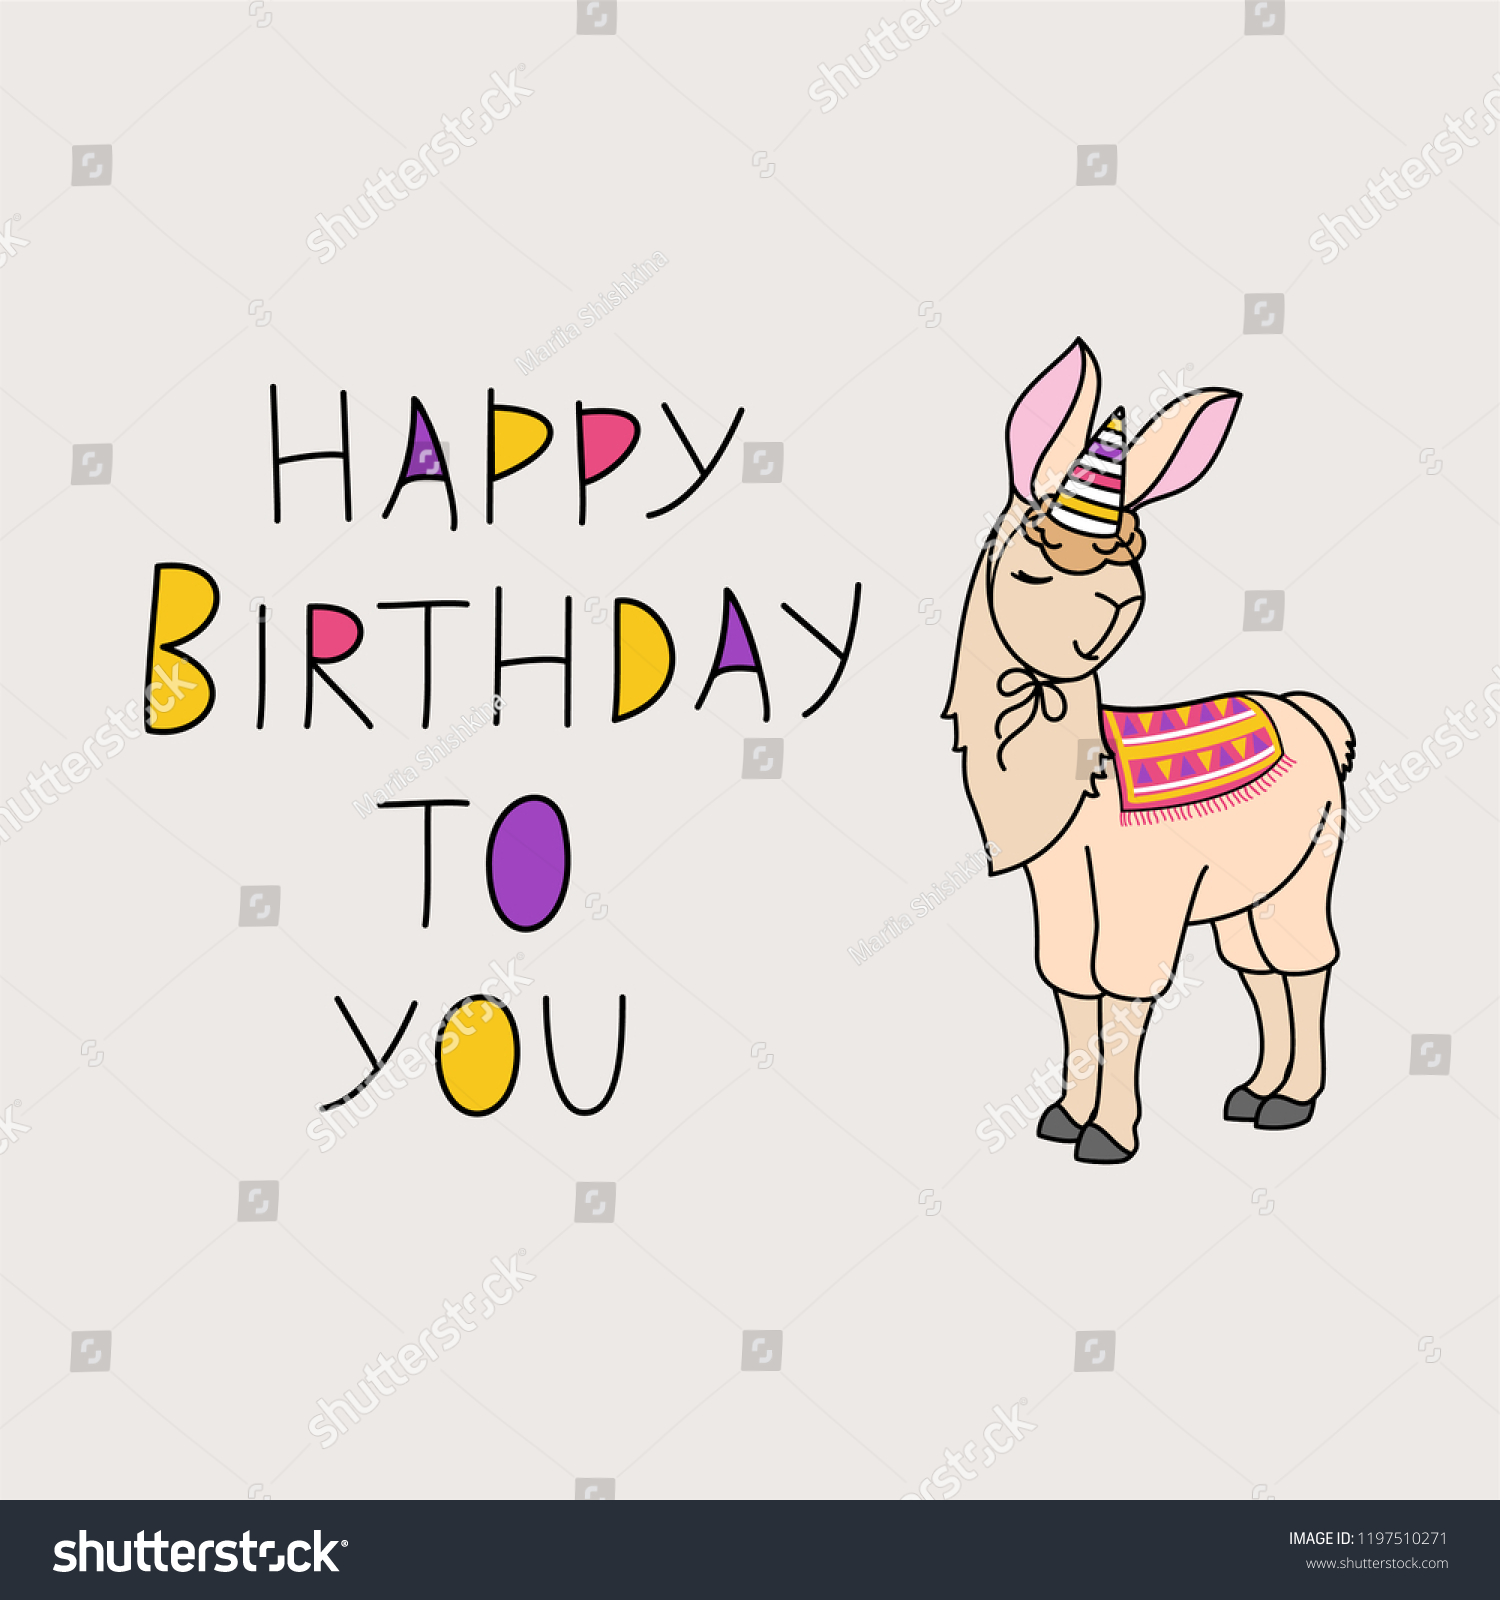 Vector Illustration Of Happy Birthday Beige Llama In A Festive Cap On Gray Background